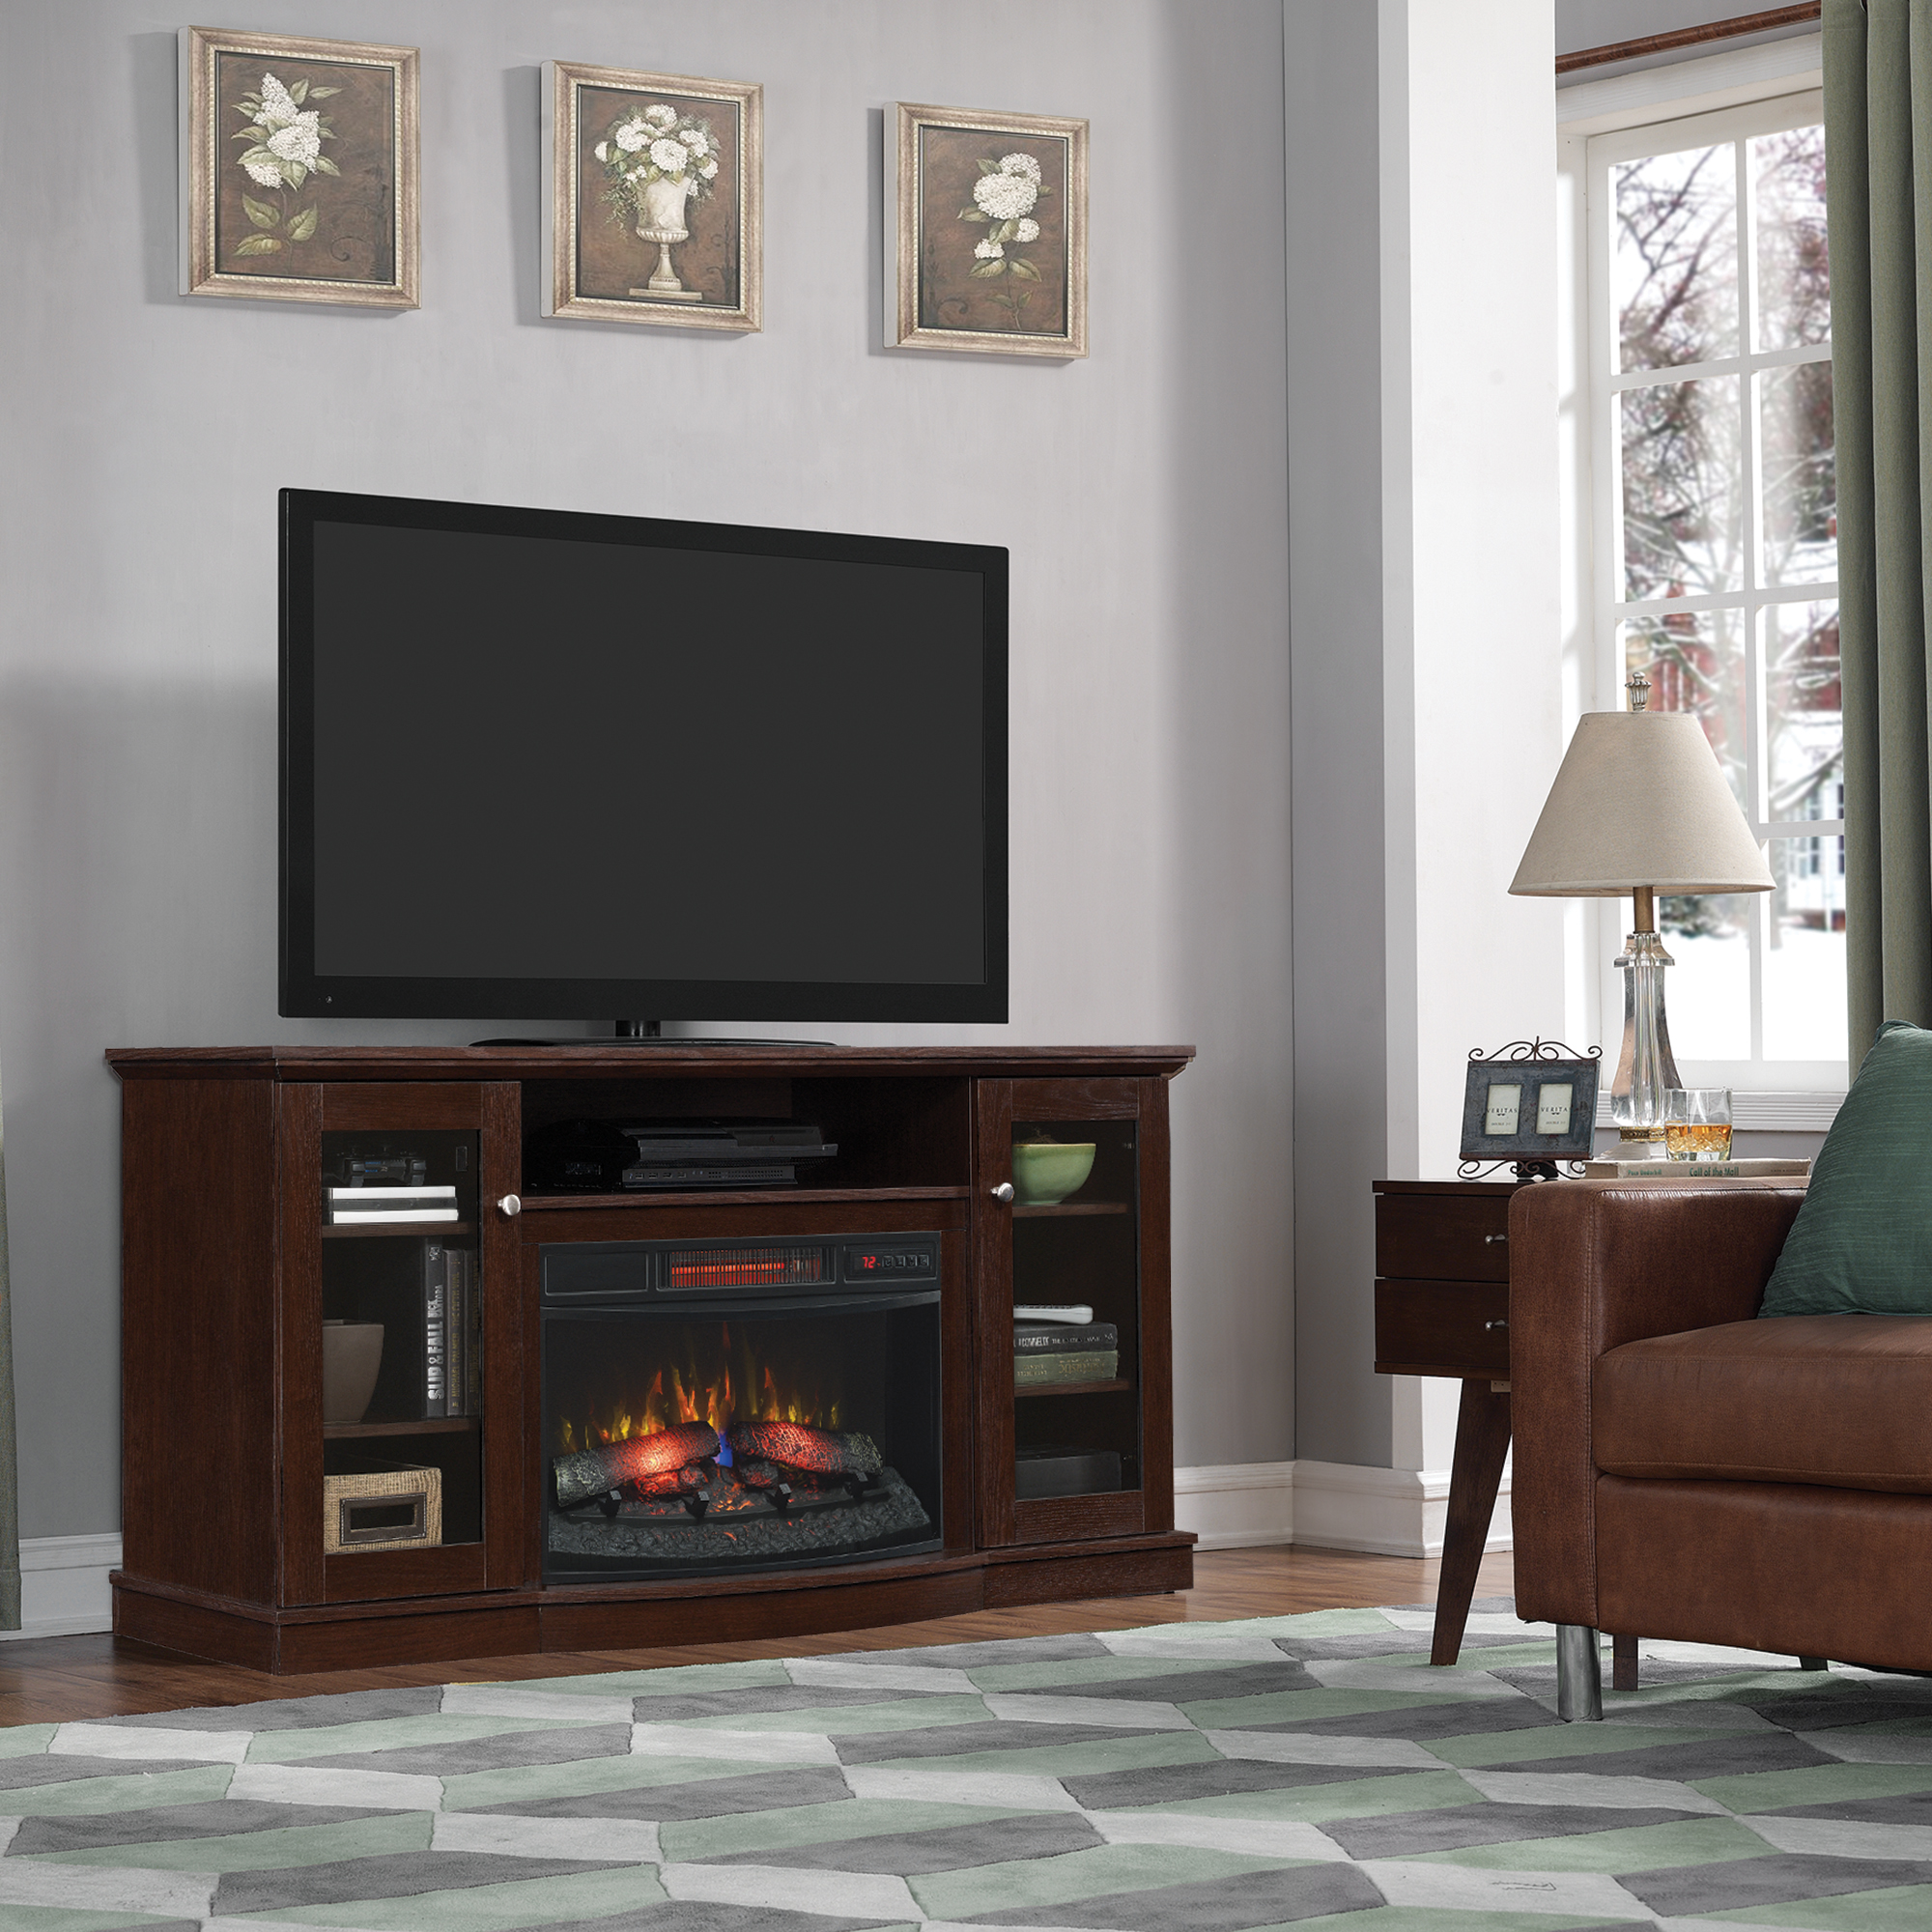 "ChimneyFree Media Electric Fireplace for TVs up to 65"", Multiple Colors"